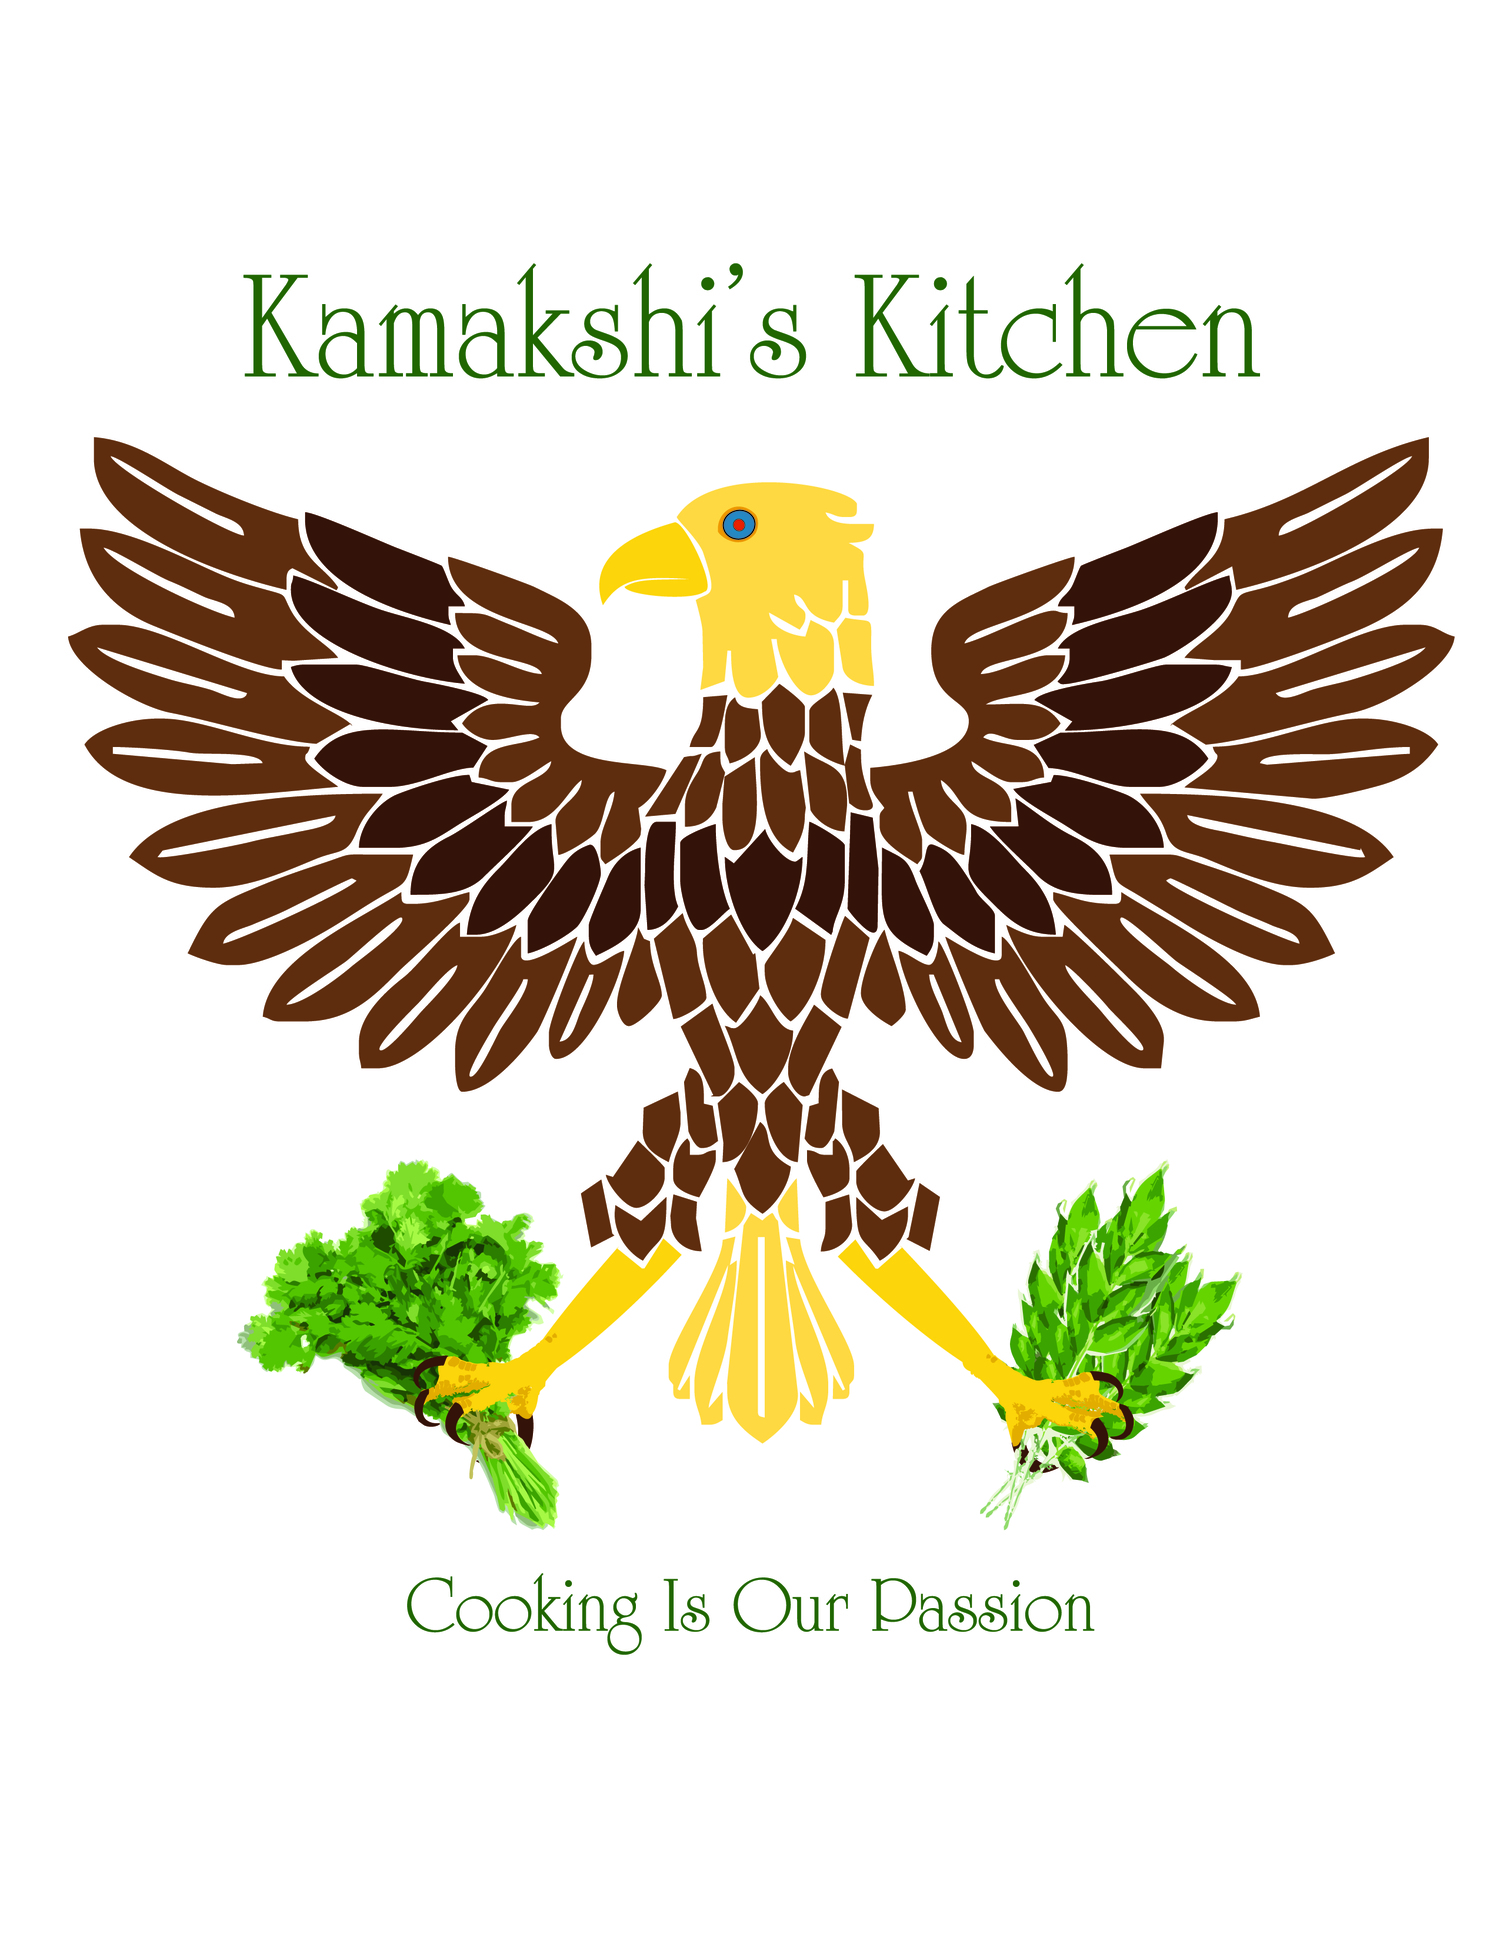 Kamakshi's Kitchen